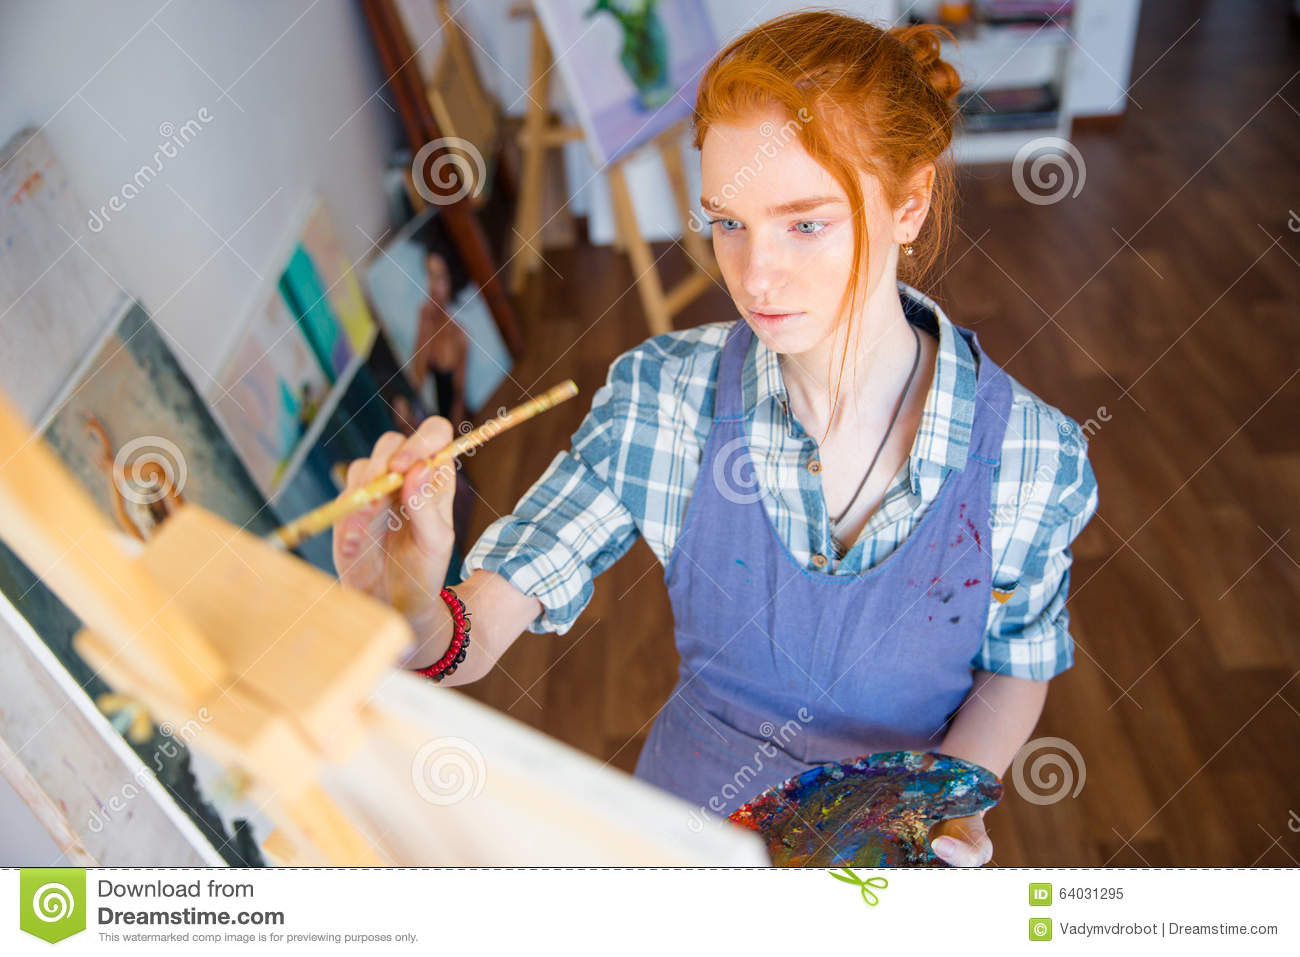 Concentrated woman painter holding art palette and painting on canvas